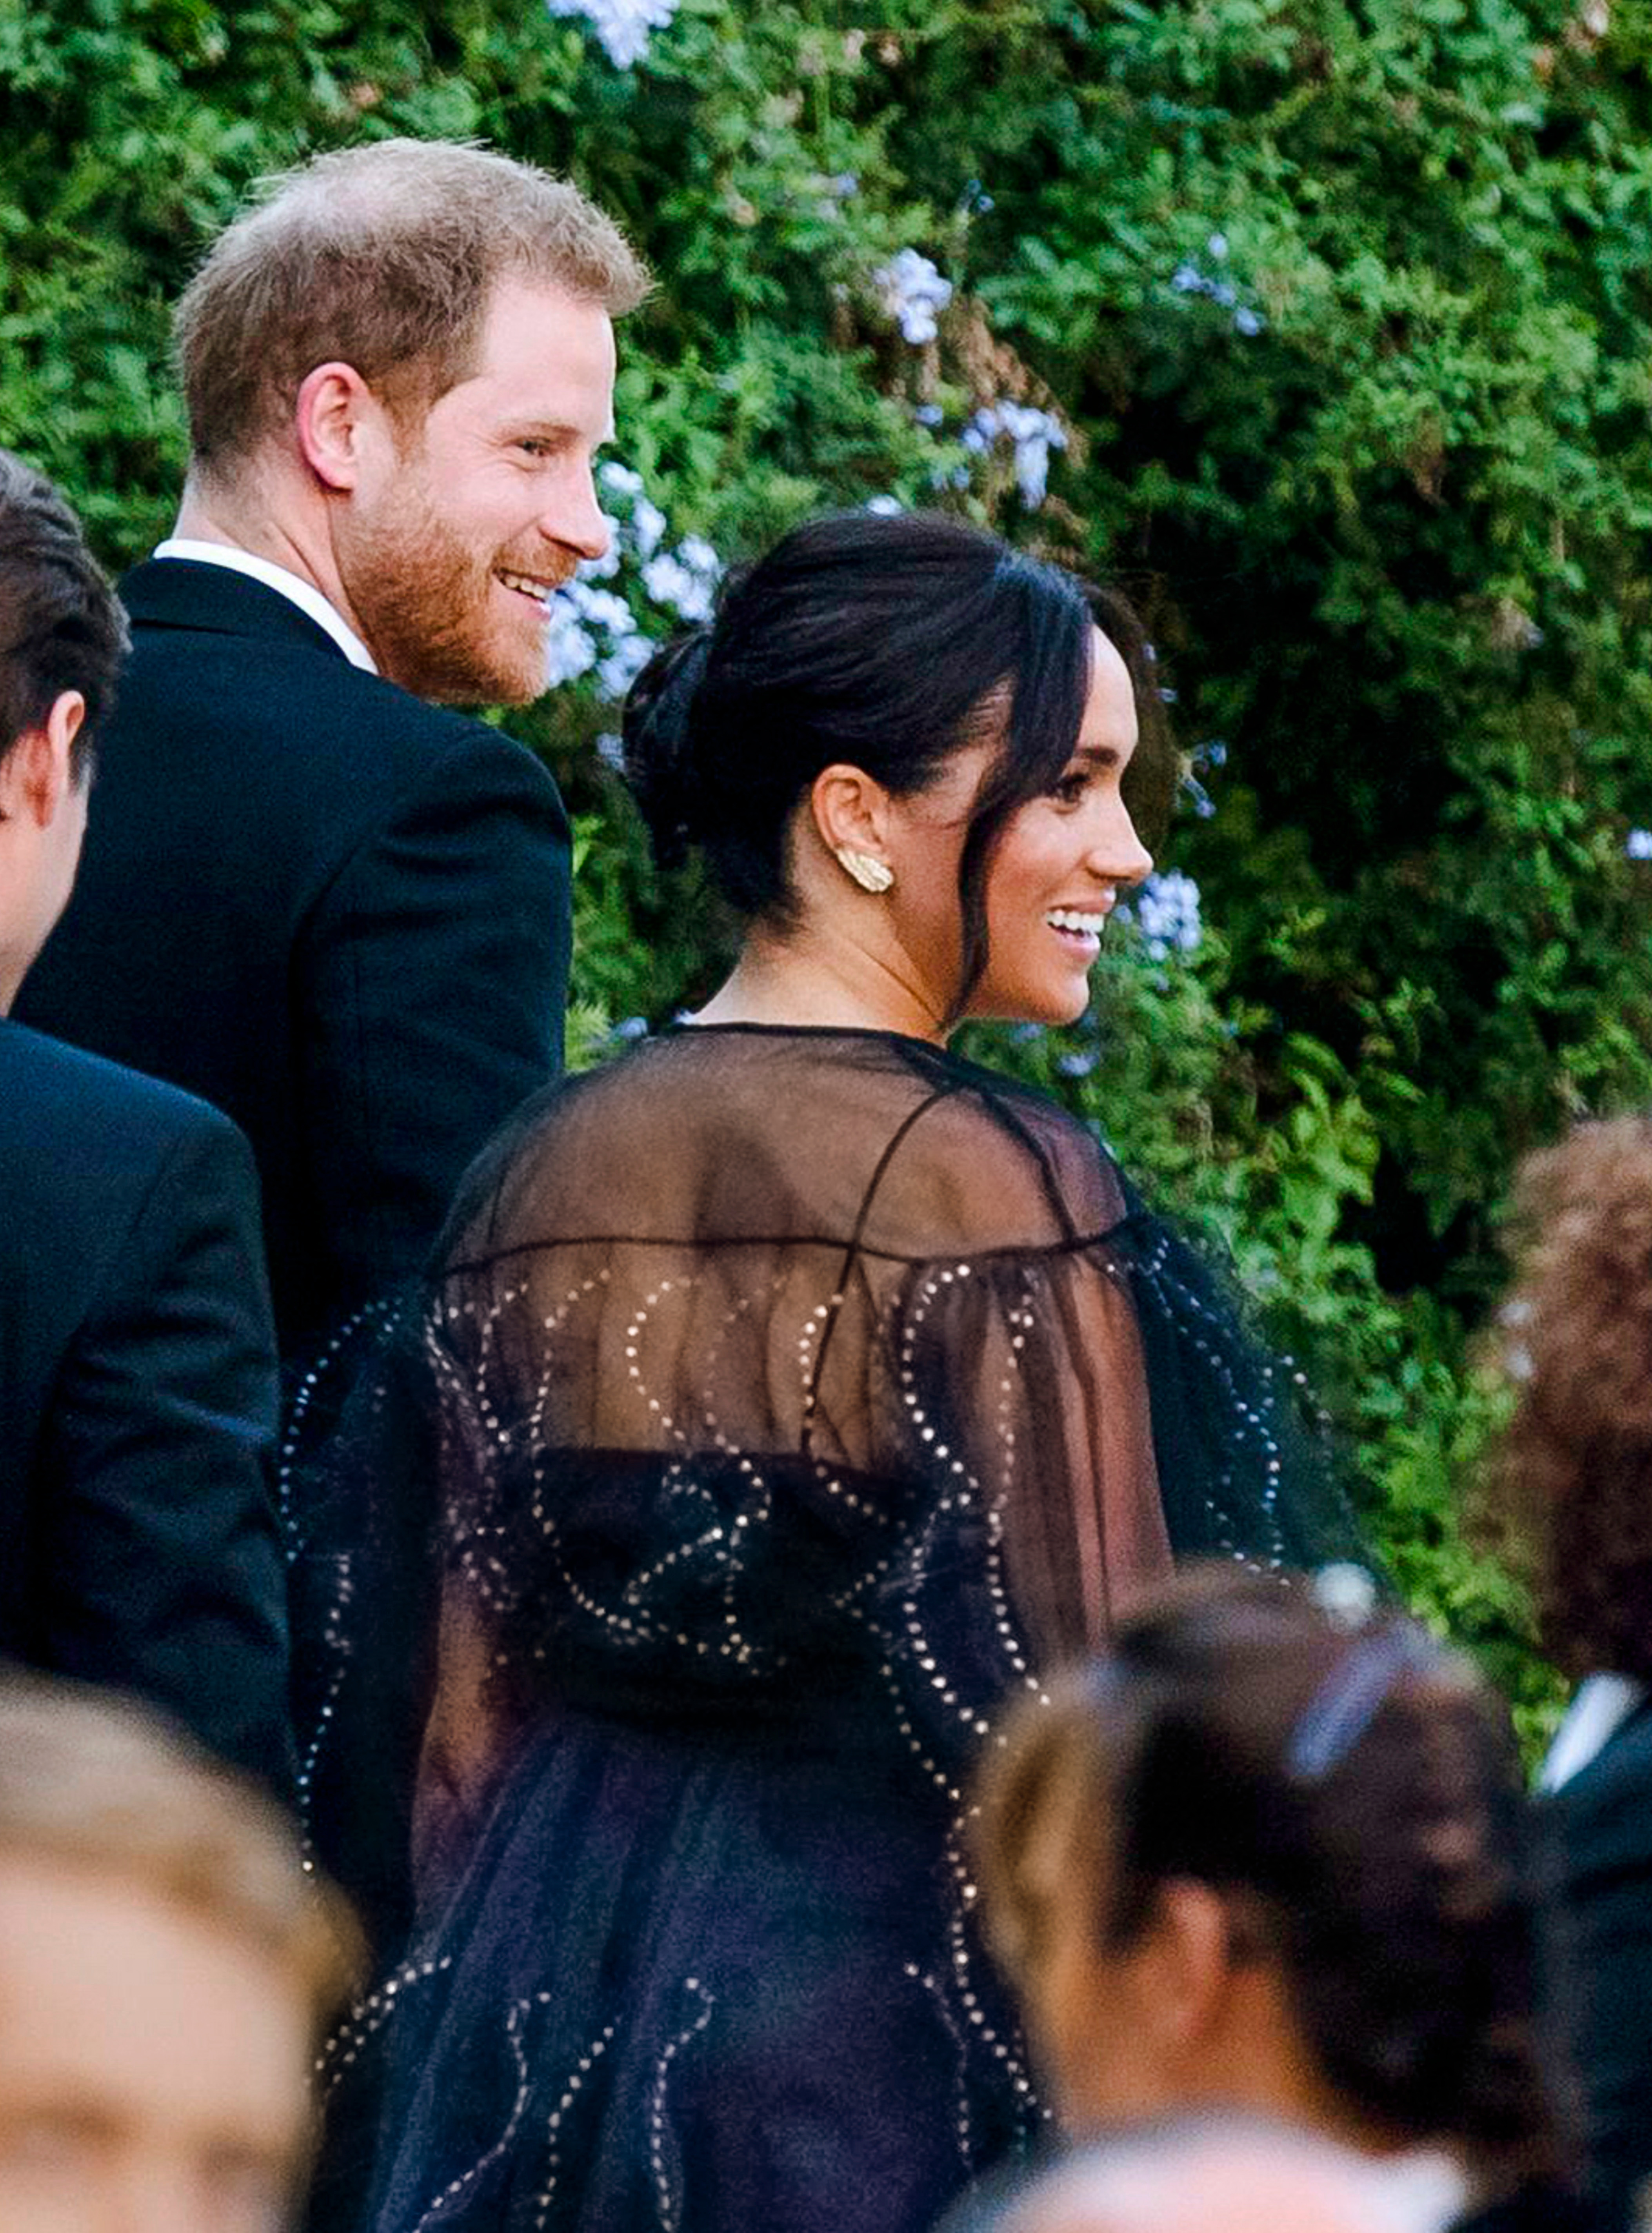 Britain's Prince Harry and his wife Meghan, Duchess of Sussex arrive to the wedding of Misha Nonoo and Michael Hess in Rome, . Britain's Prince Harry and his wife Meghan, Duchess of Sussex will attend the wedding of their friends before leaving on an official trip to AfricaBritain Royals, Rome, Italy - 20 Sep 2019